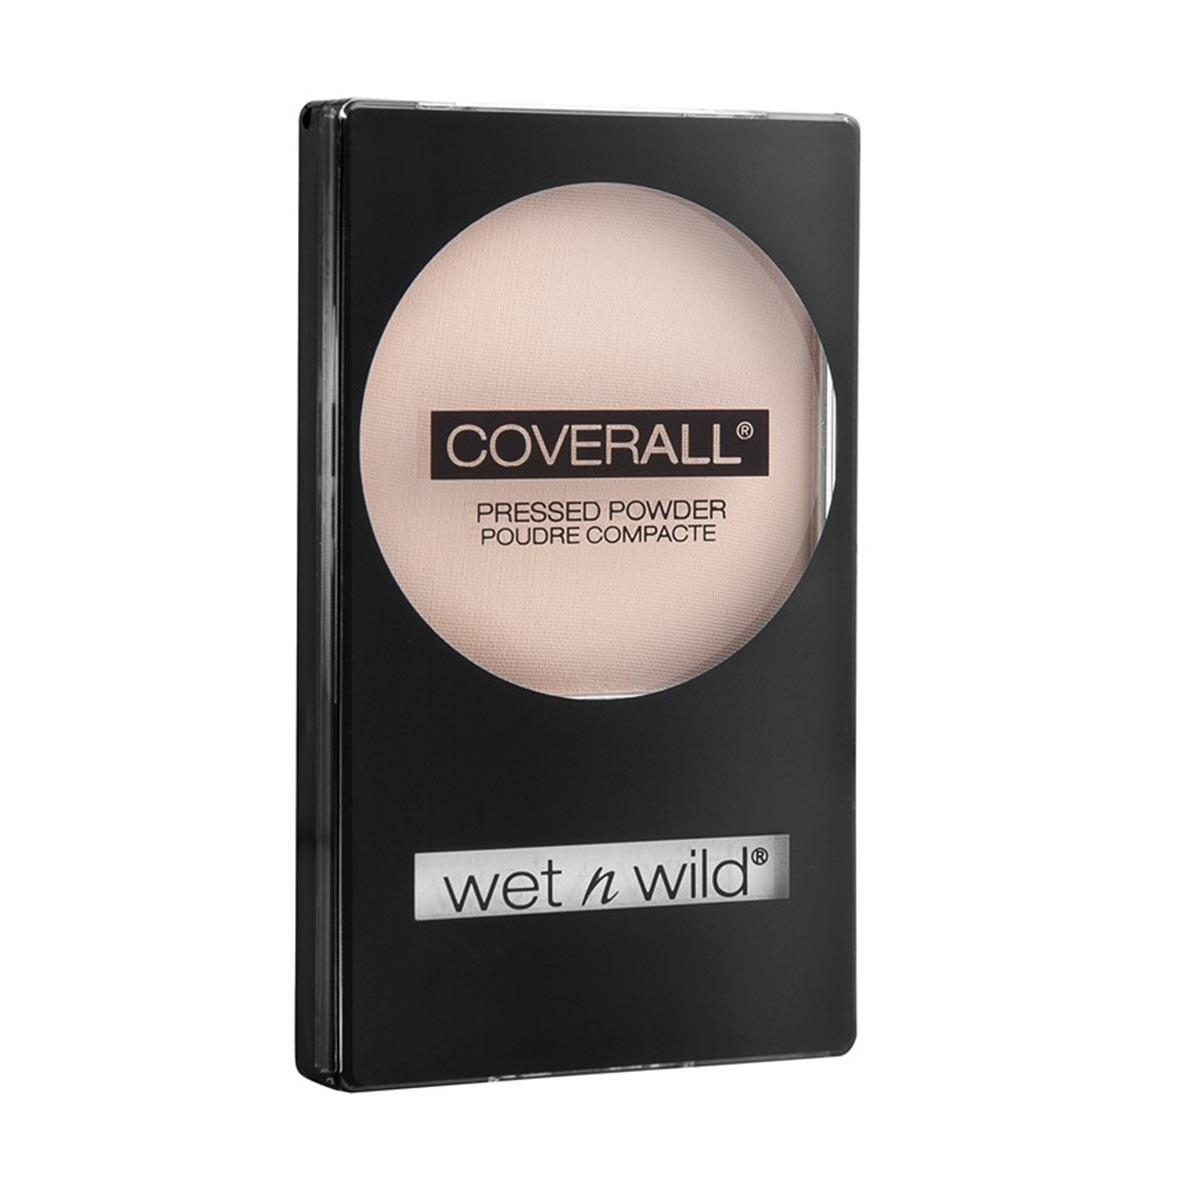 Wet n wild fragrances Coverall Pressed Powder Light